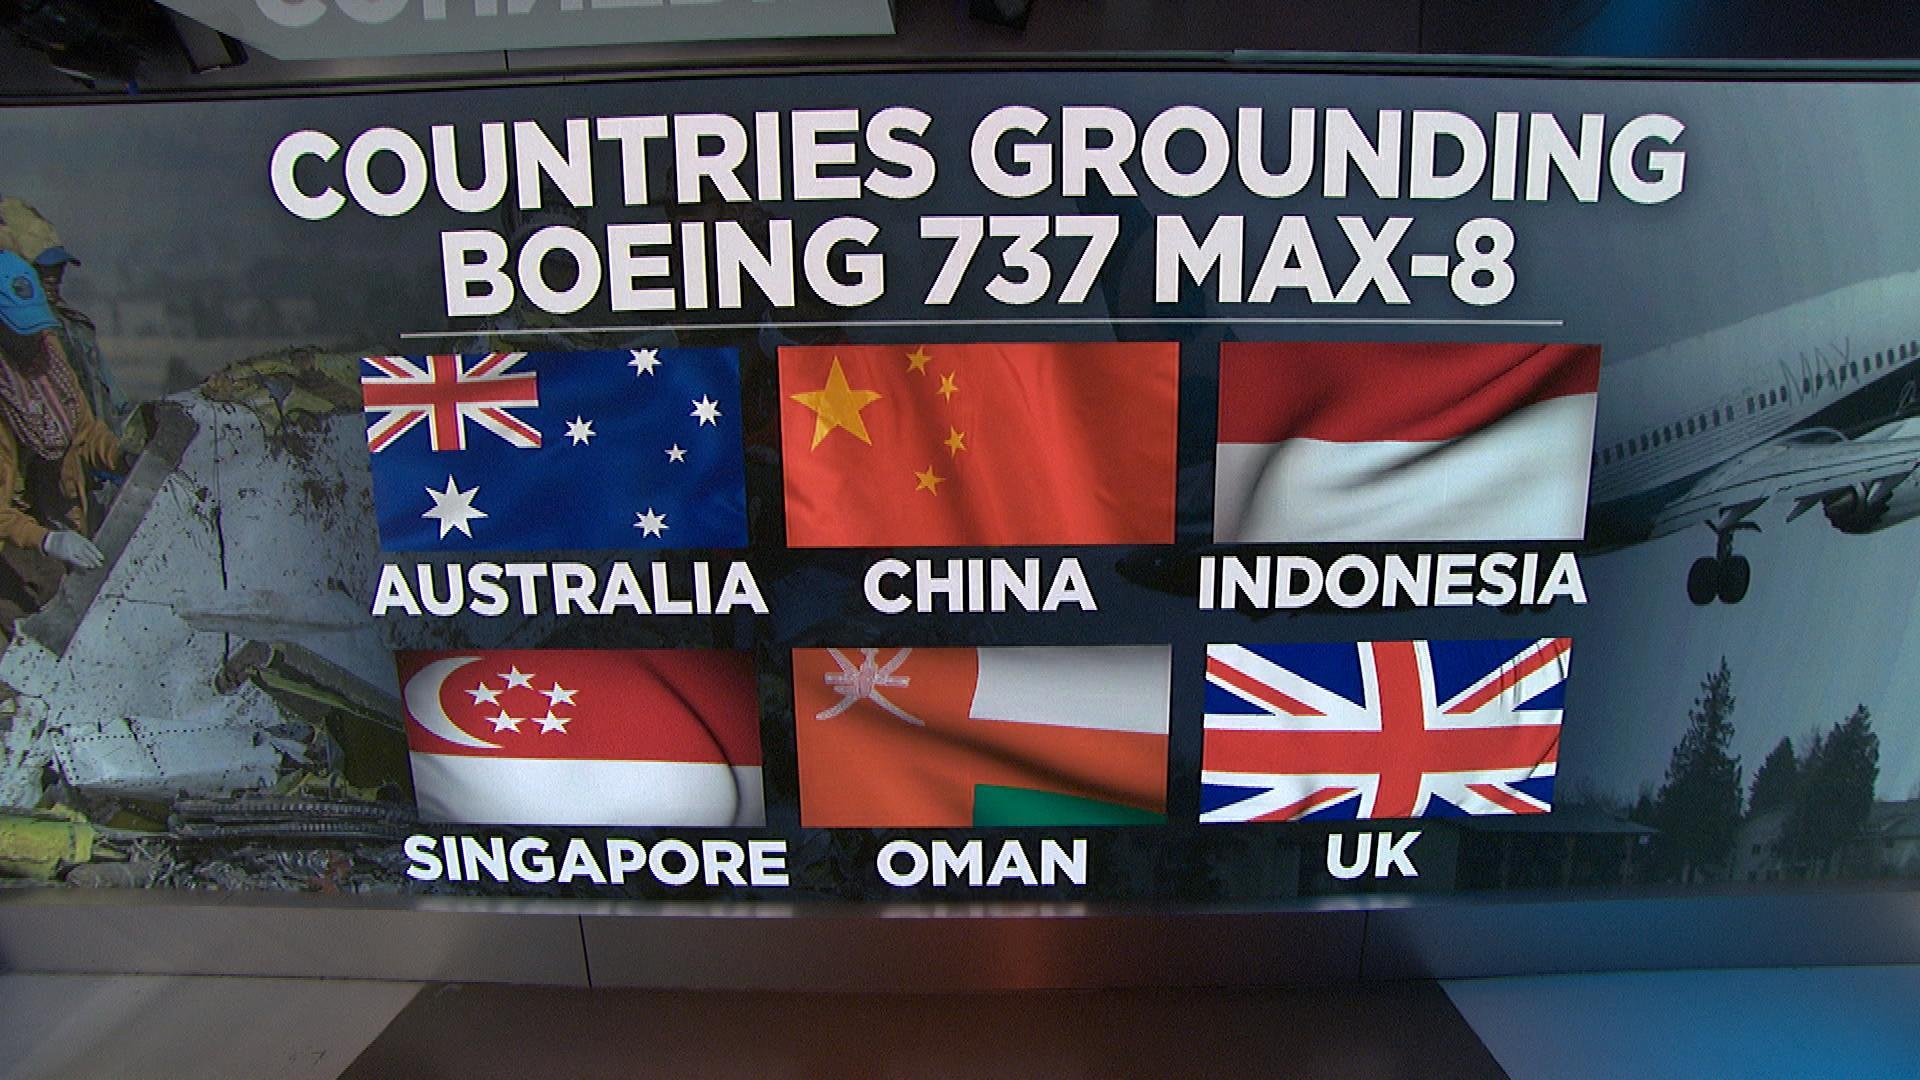 United Kingdom joins growing list of countries grounding Boeing jet